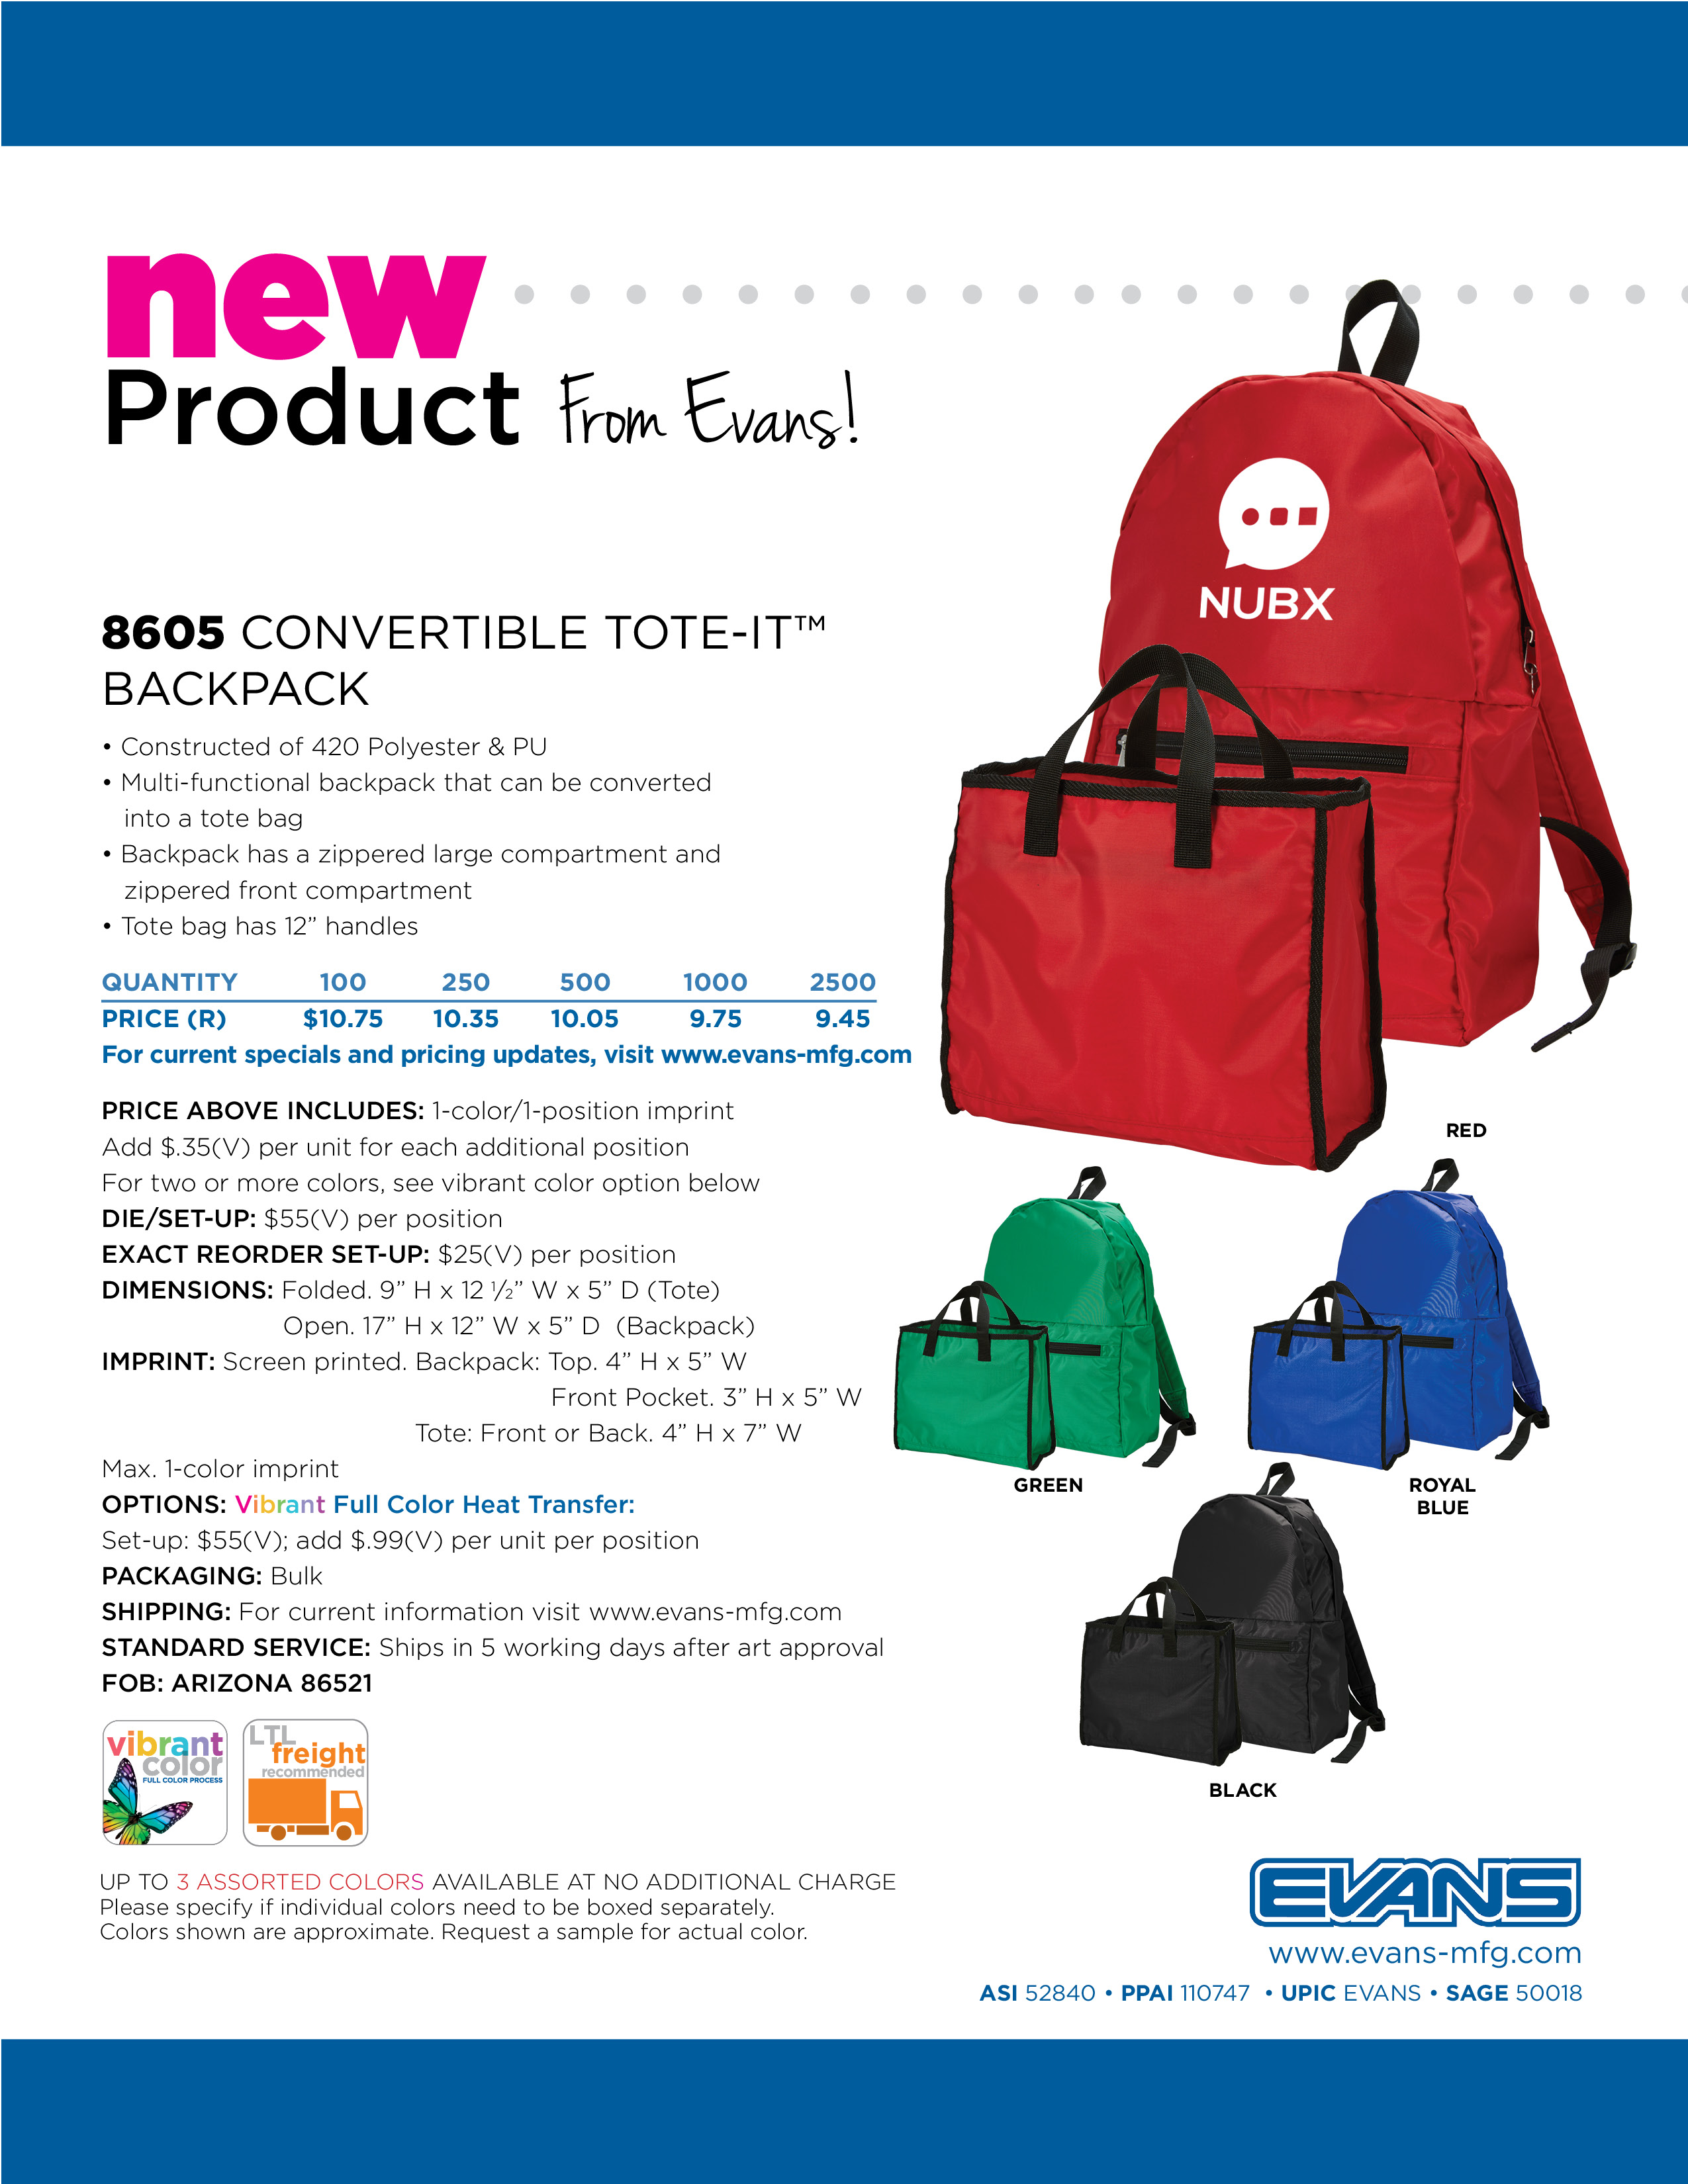 8605 Convertible Tote-It™ Backpack